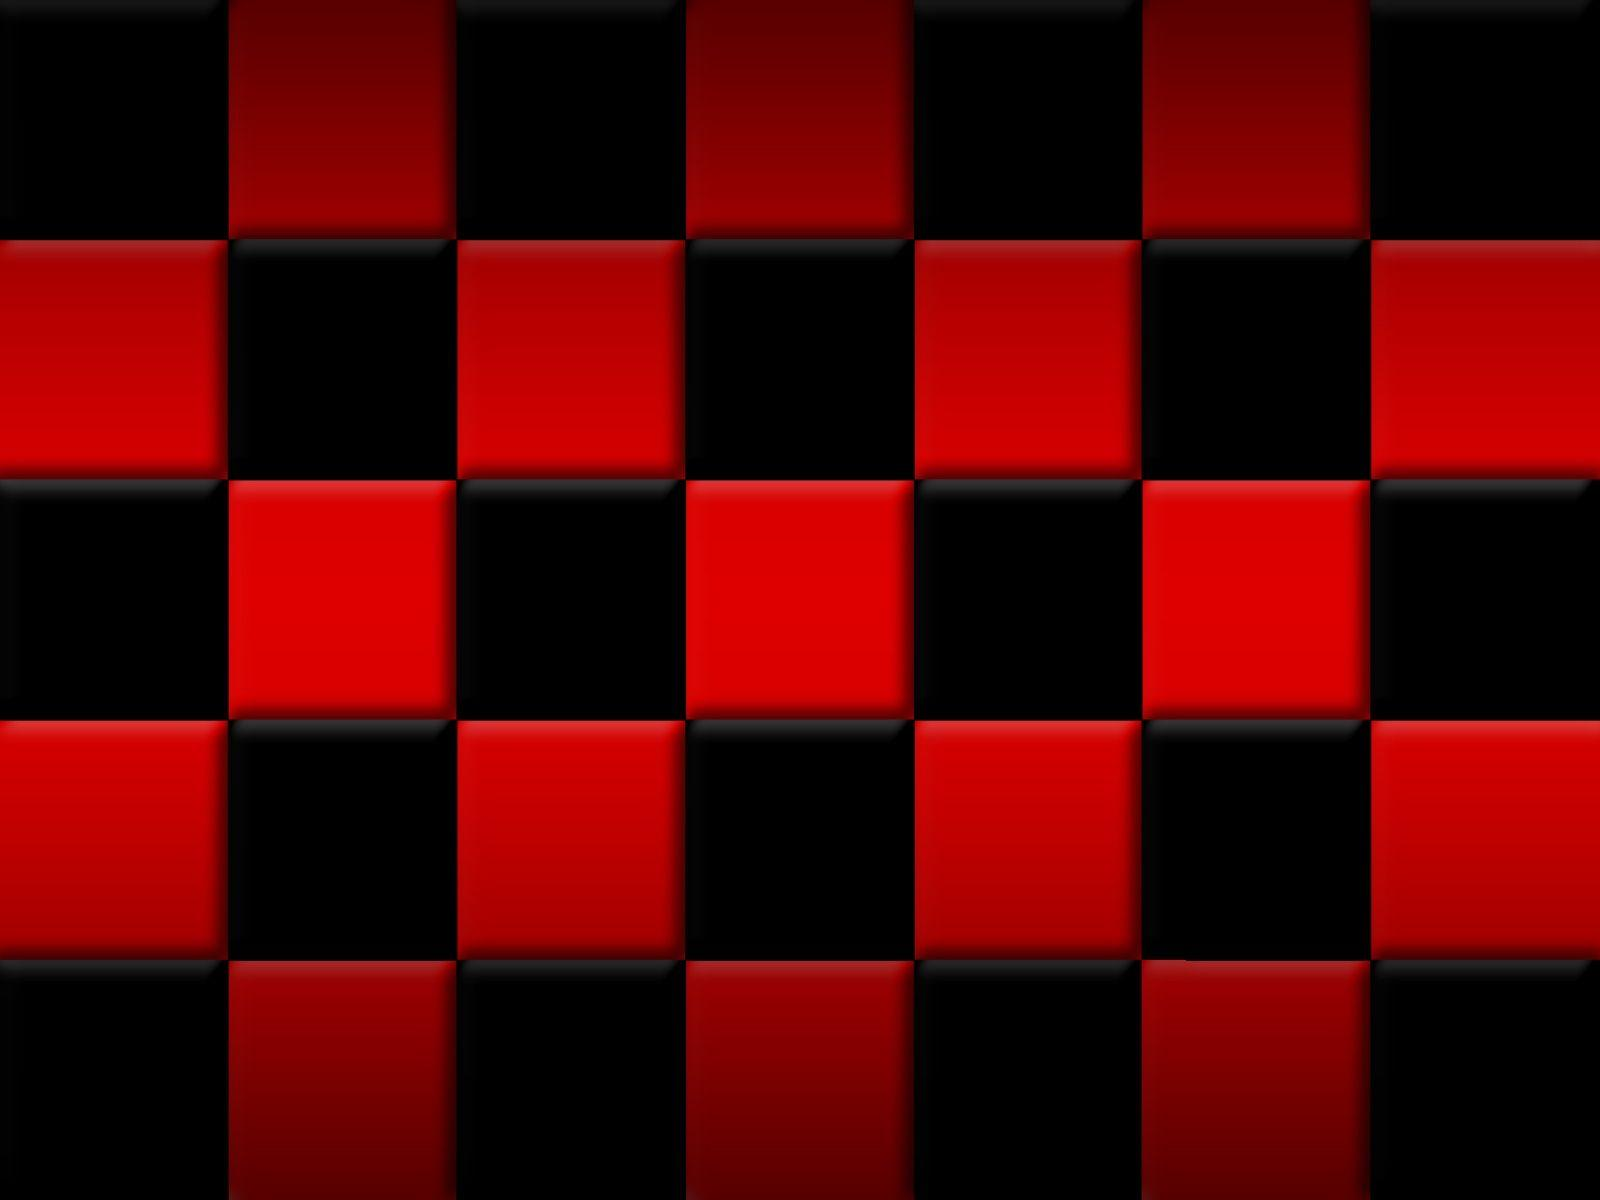 Red and Black Checkered Backgrounds Free Stock Photo and Wallpapers